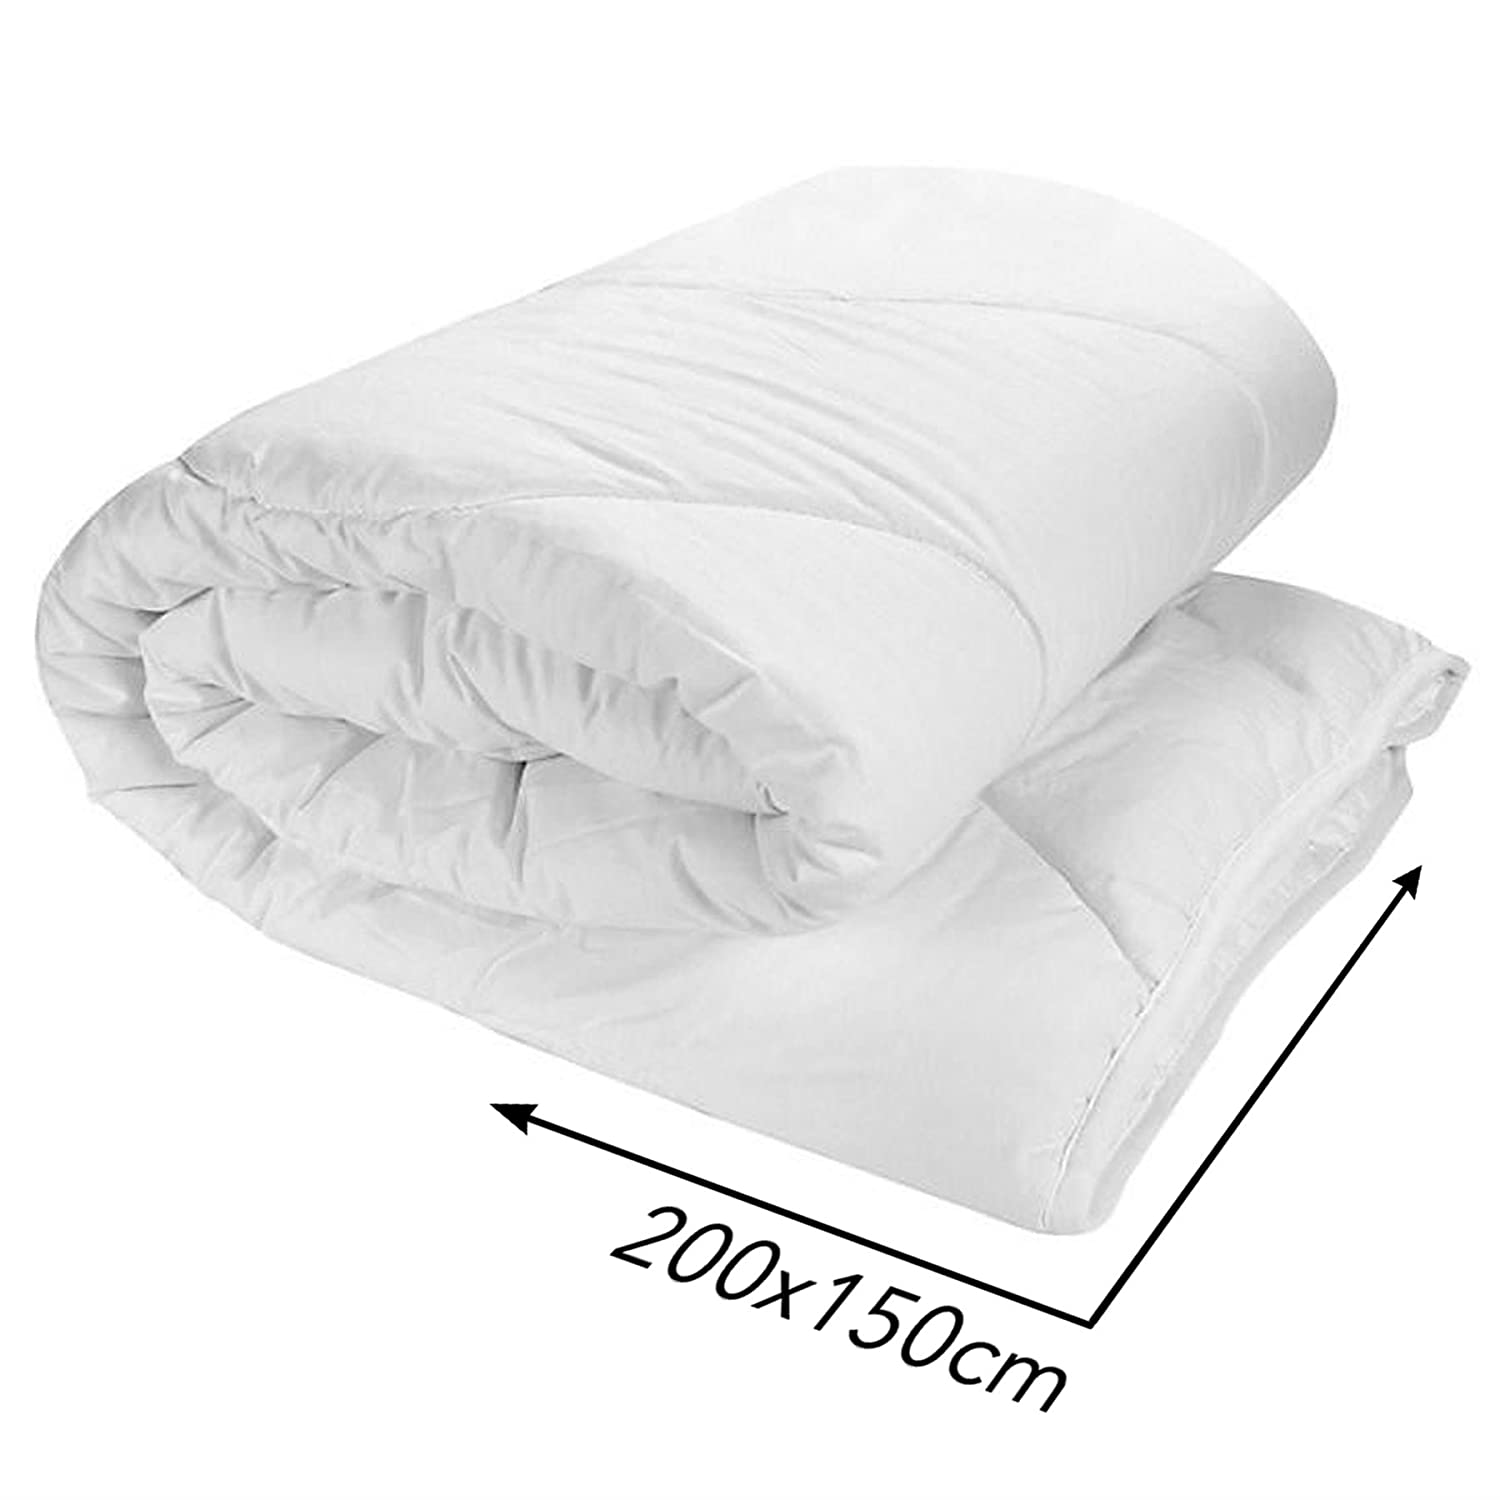 Baby Comfort ALL SEASONS DUVET QUILT 150X200 CM SINGLE BED SIZE ANTI ALLERGY